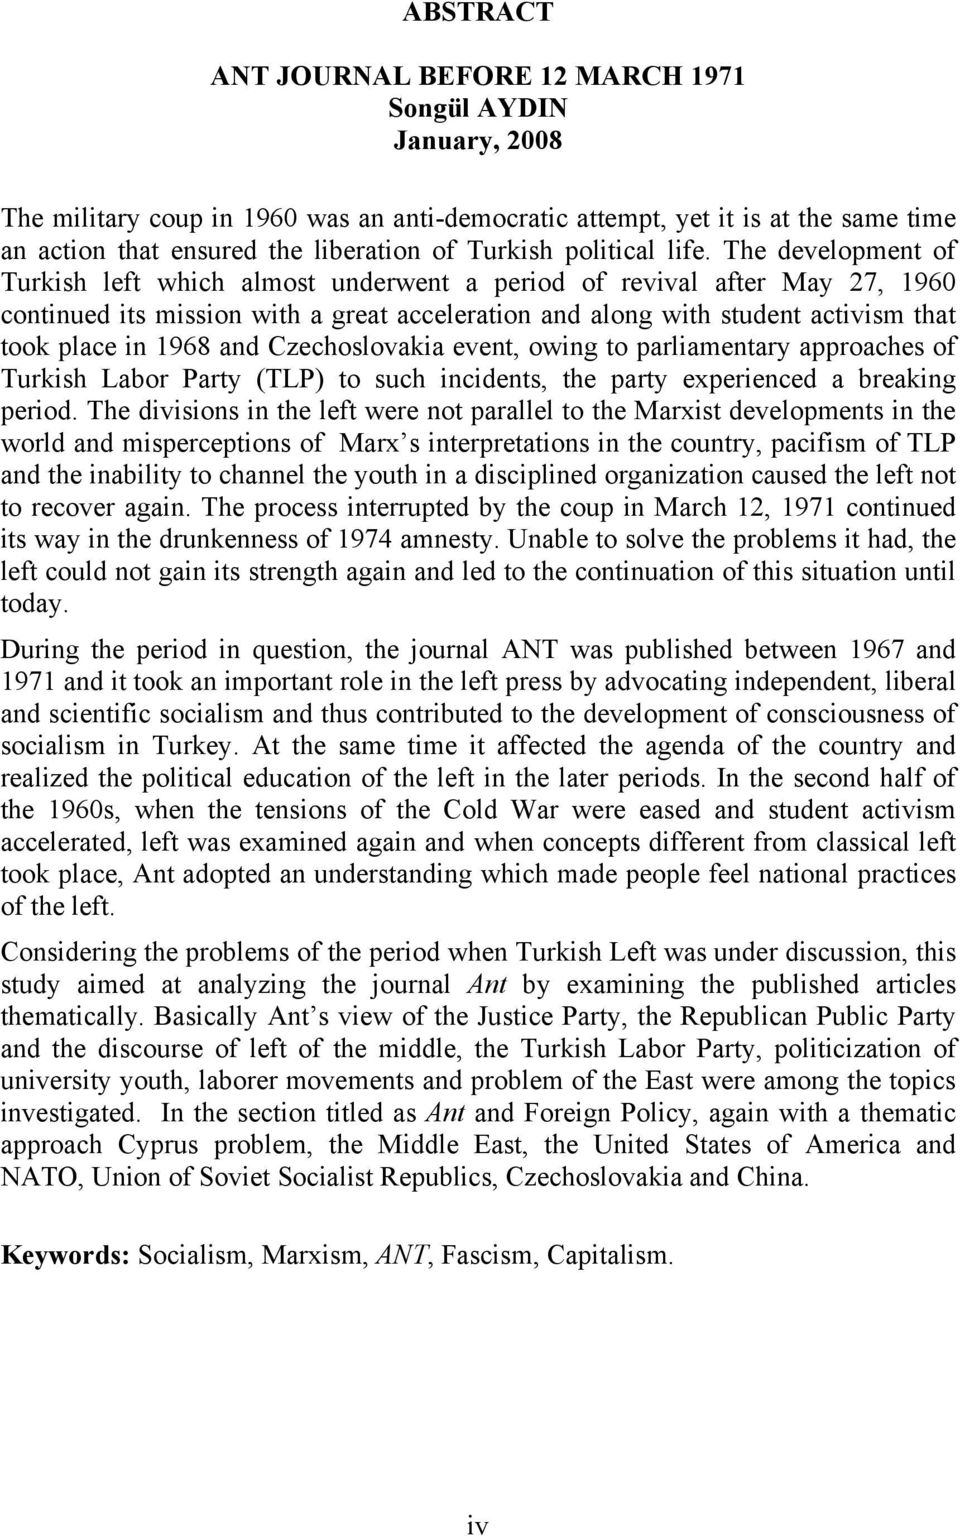 The development of Turkish left which almost underwent a period of revival after May 27, 1960 continued its mission with a great acceleration and along with student activism that took place in 1968